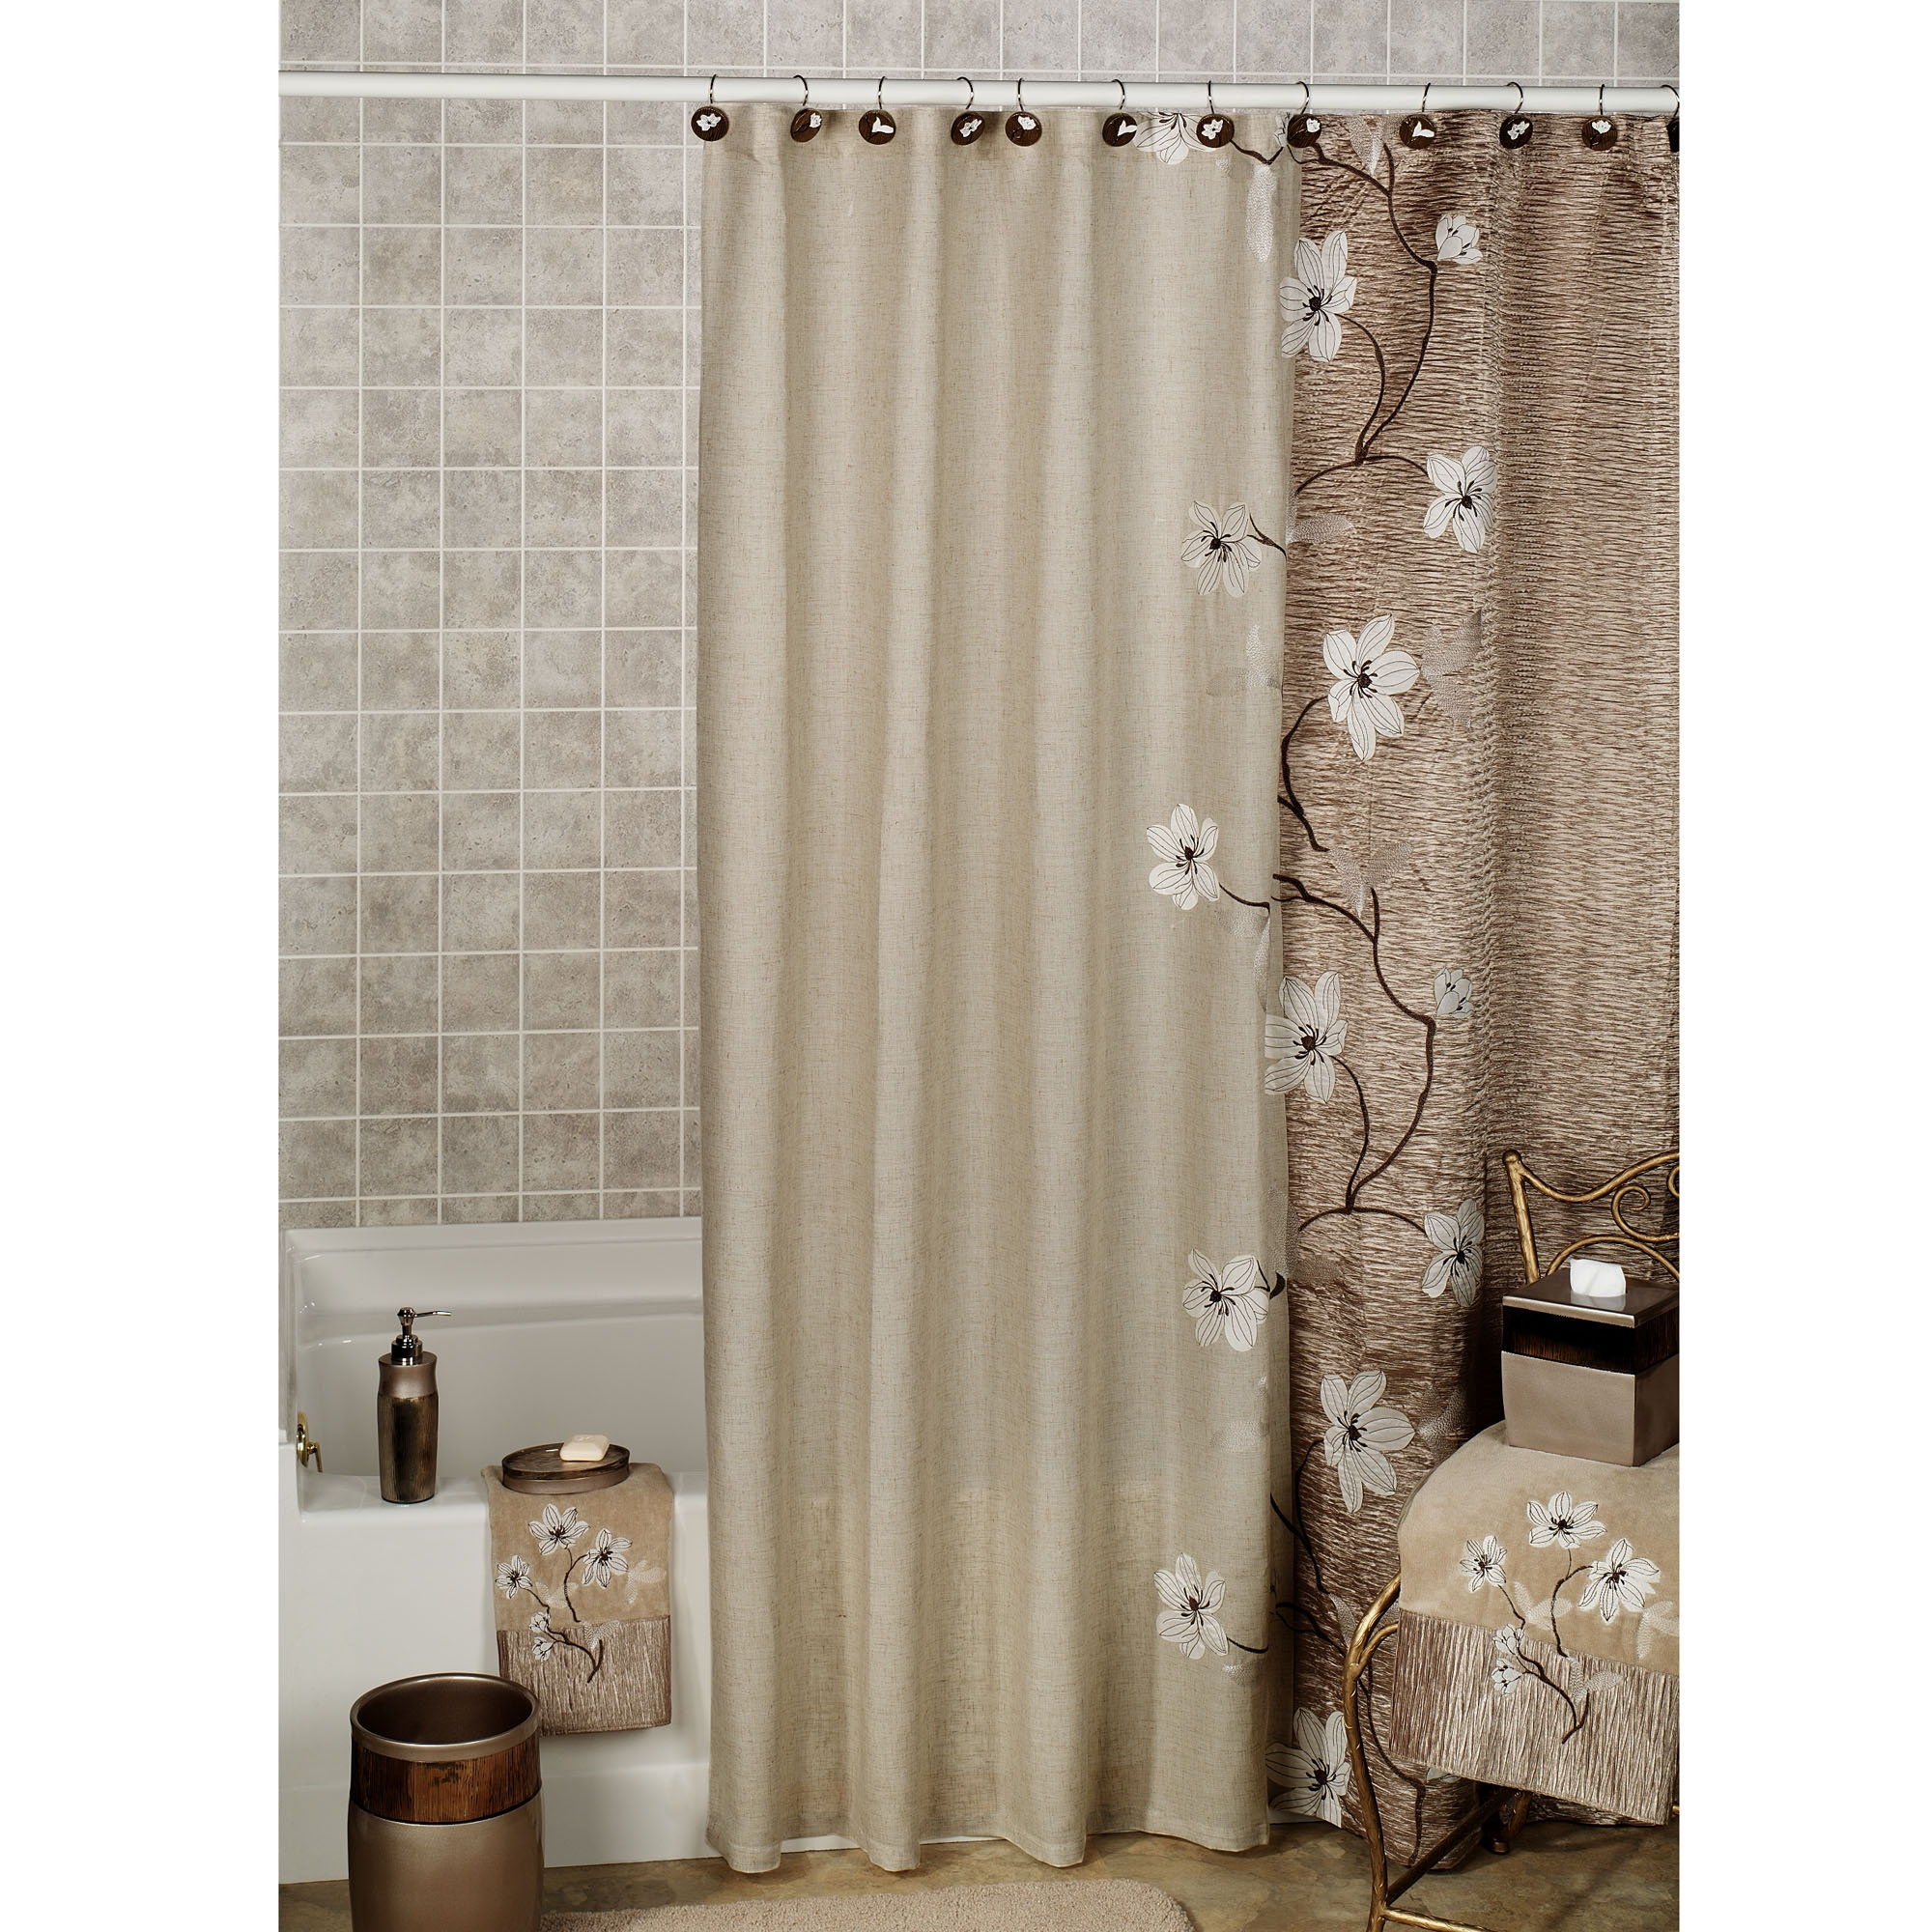 Shower Curtains With Matching Rugs And Towels Curtain Ideas Intended For Dimensions 2000 X